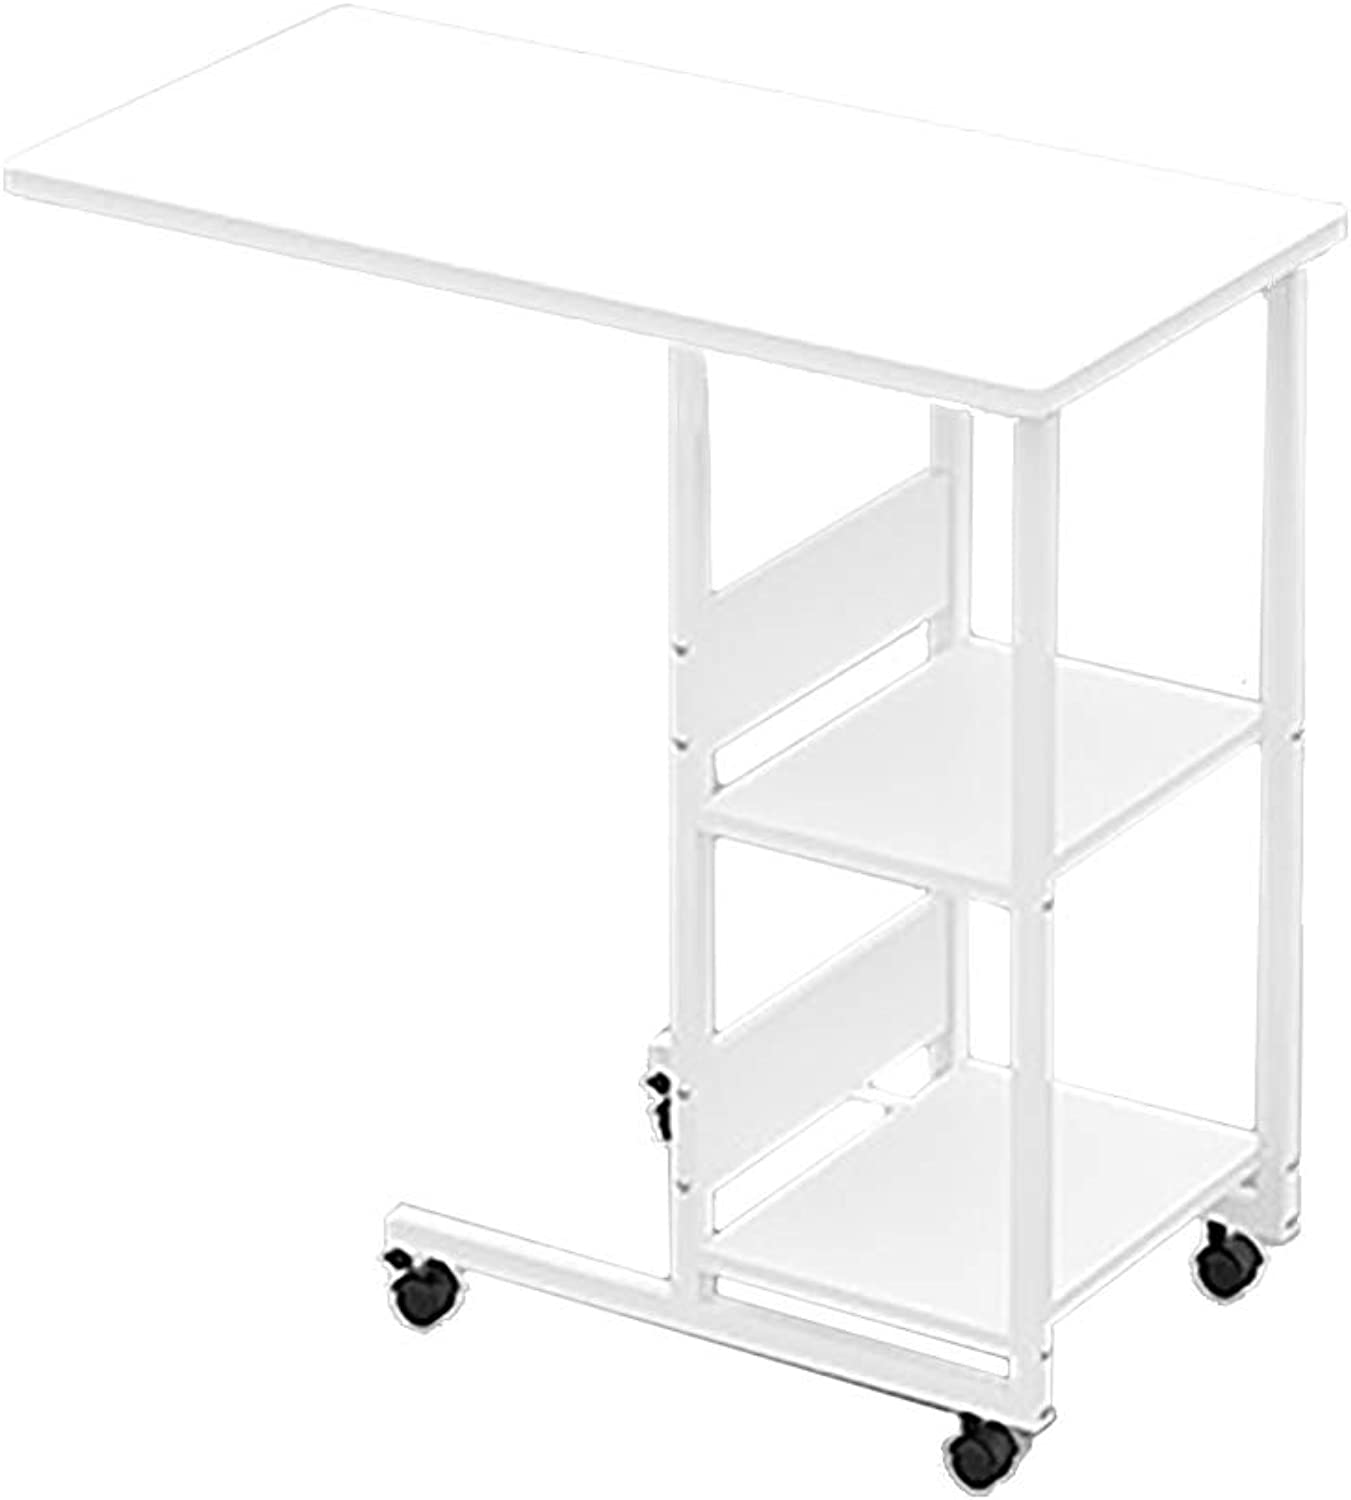 ZDZ Wheeled Laptop Desk, Simple Lazy Small Table Removable Desk Storage Table White